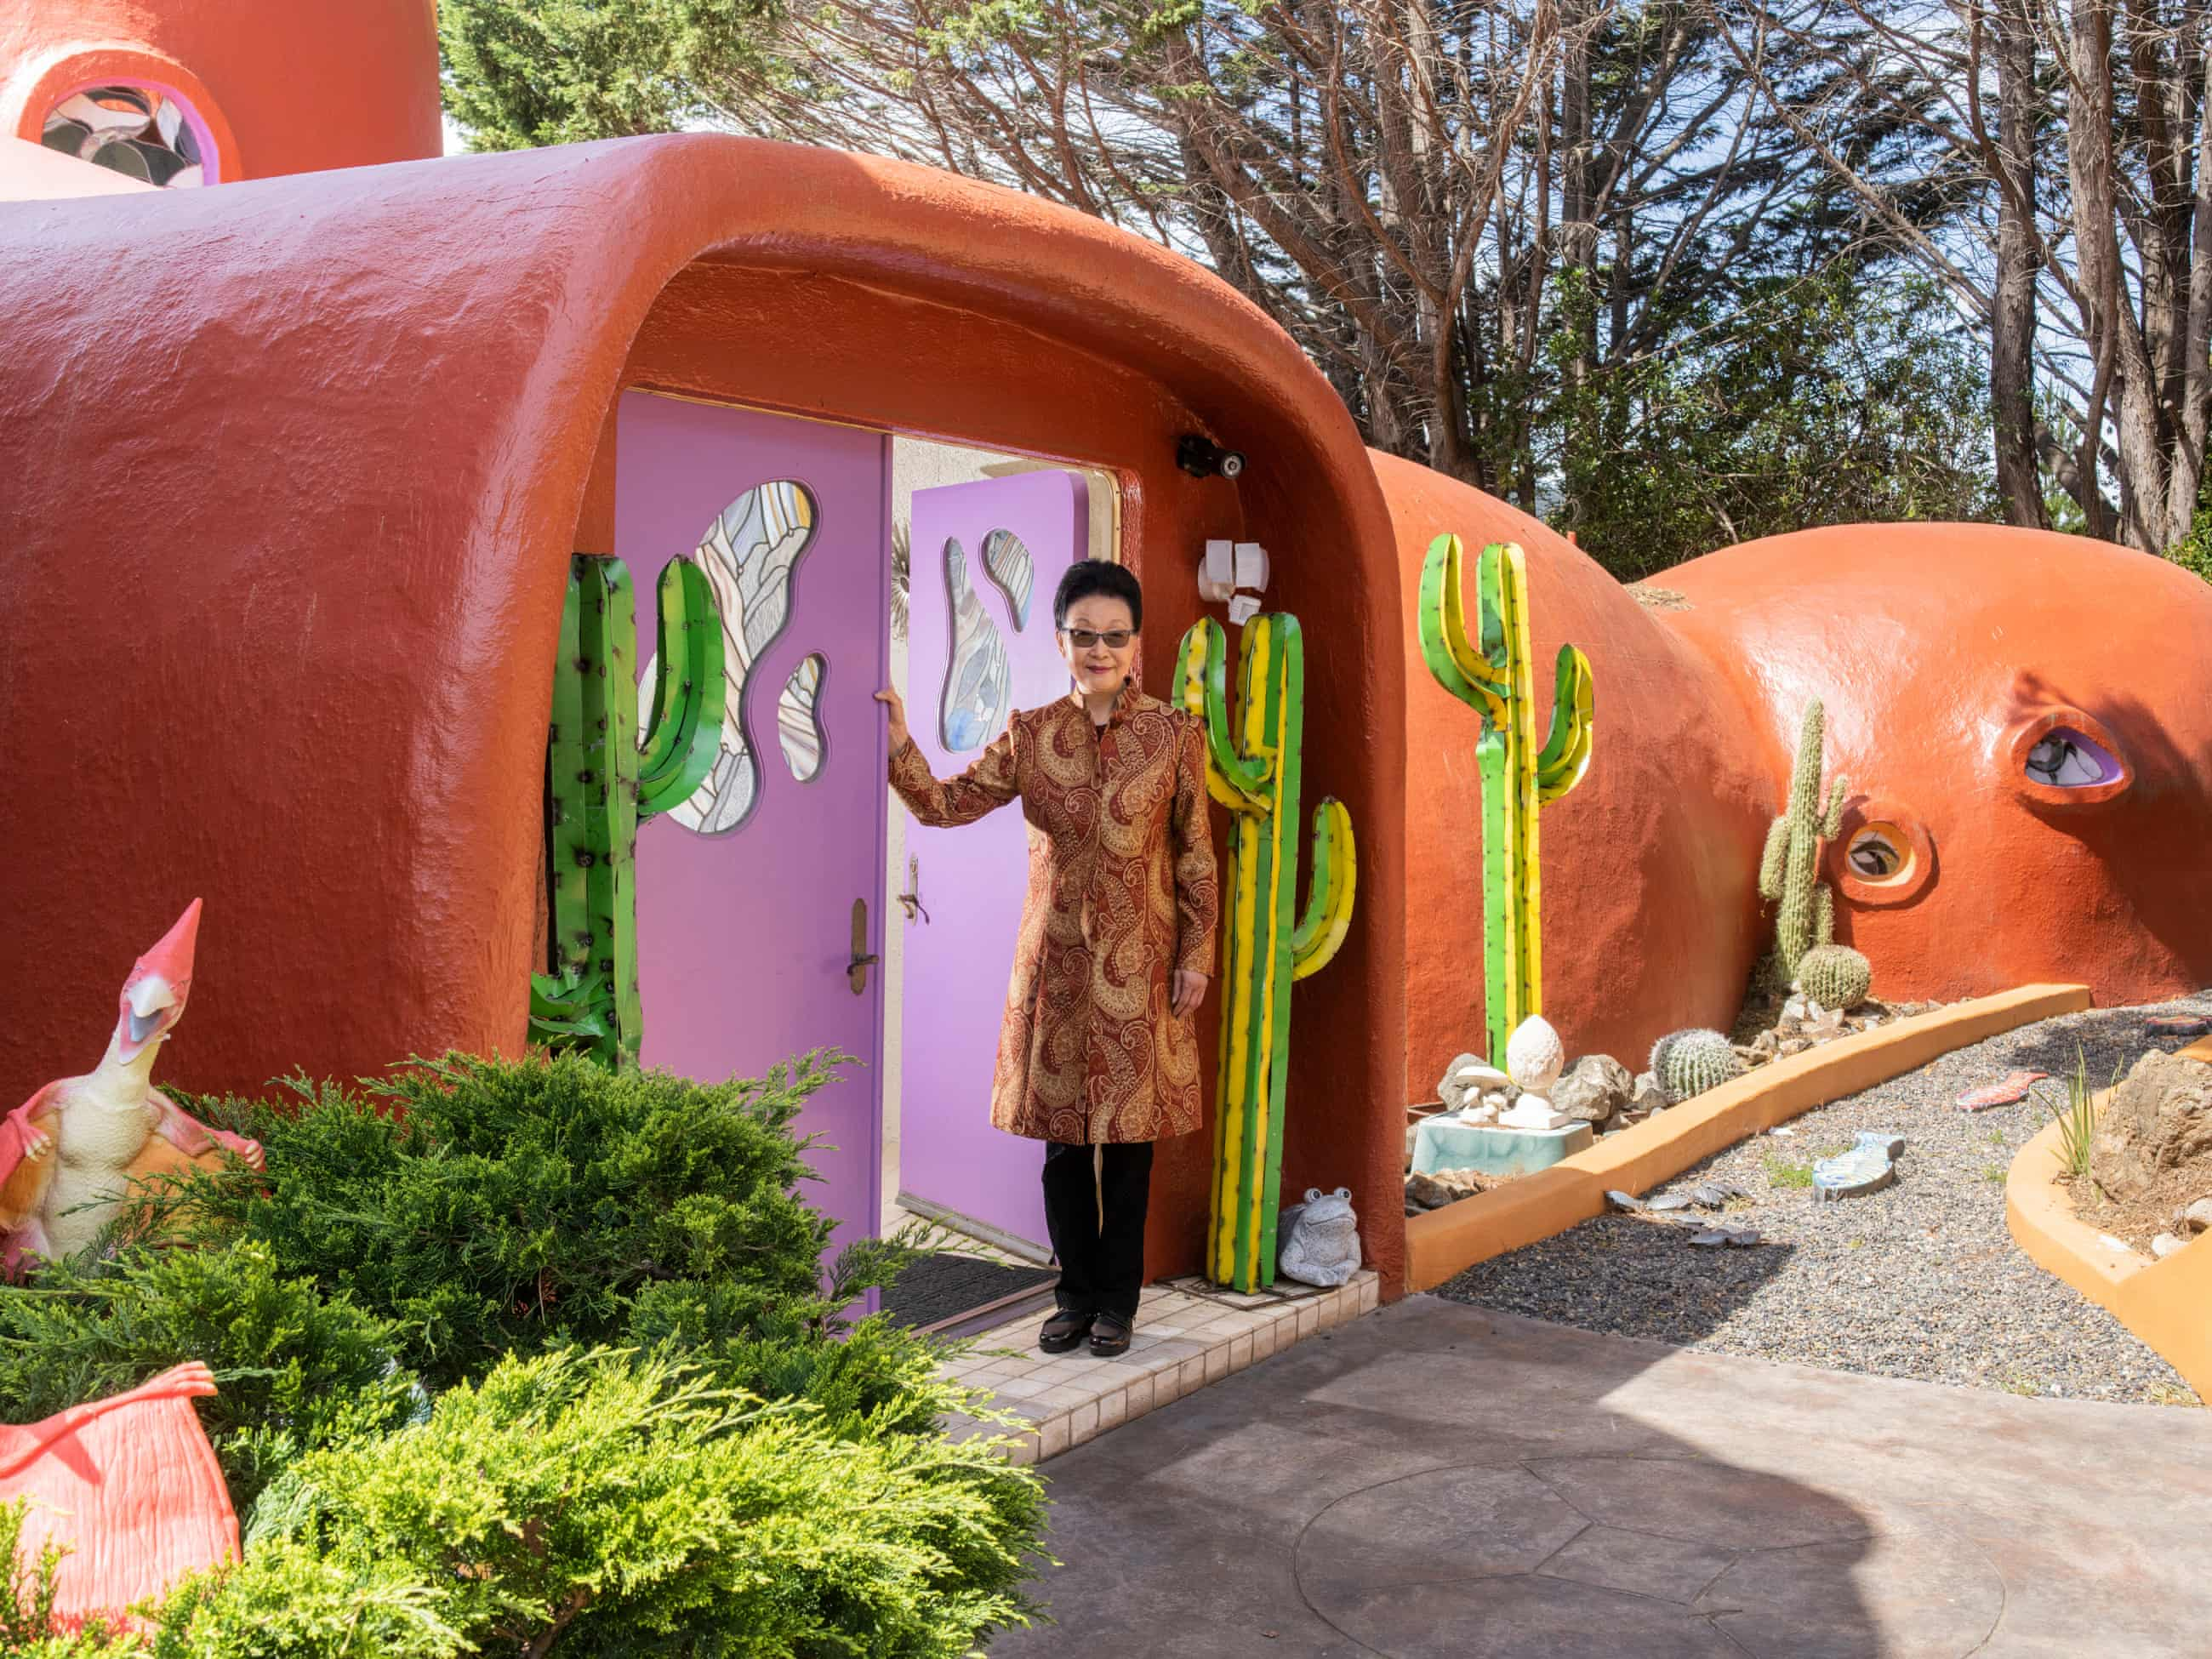 'I see any dinosaur, I buy it': at home with the embattled owner of the Flintstone house